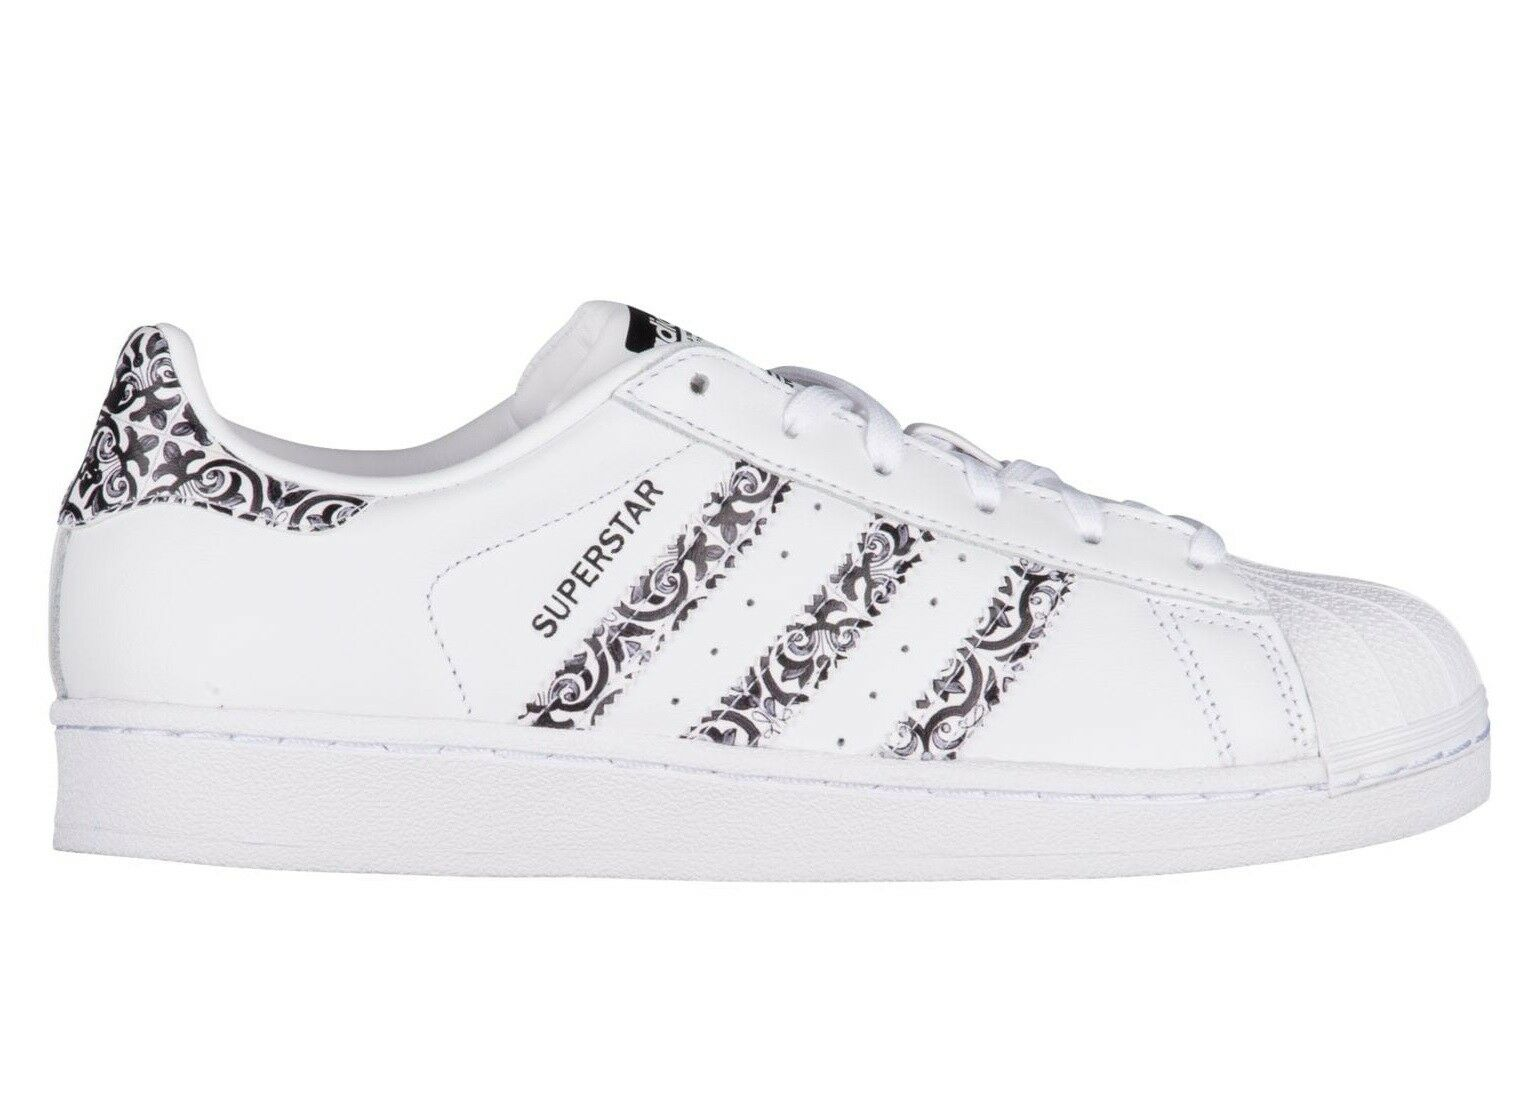 Adidas Superstar x The Farm Womens CP9628 White Black Leather shoes Size 8.5